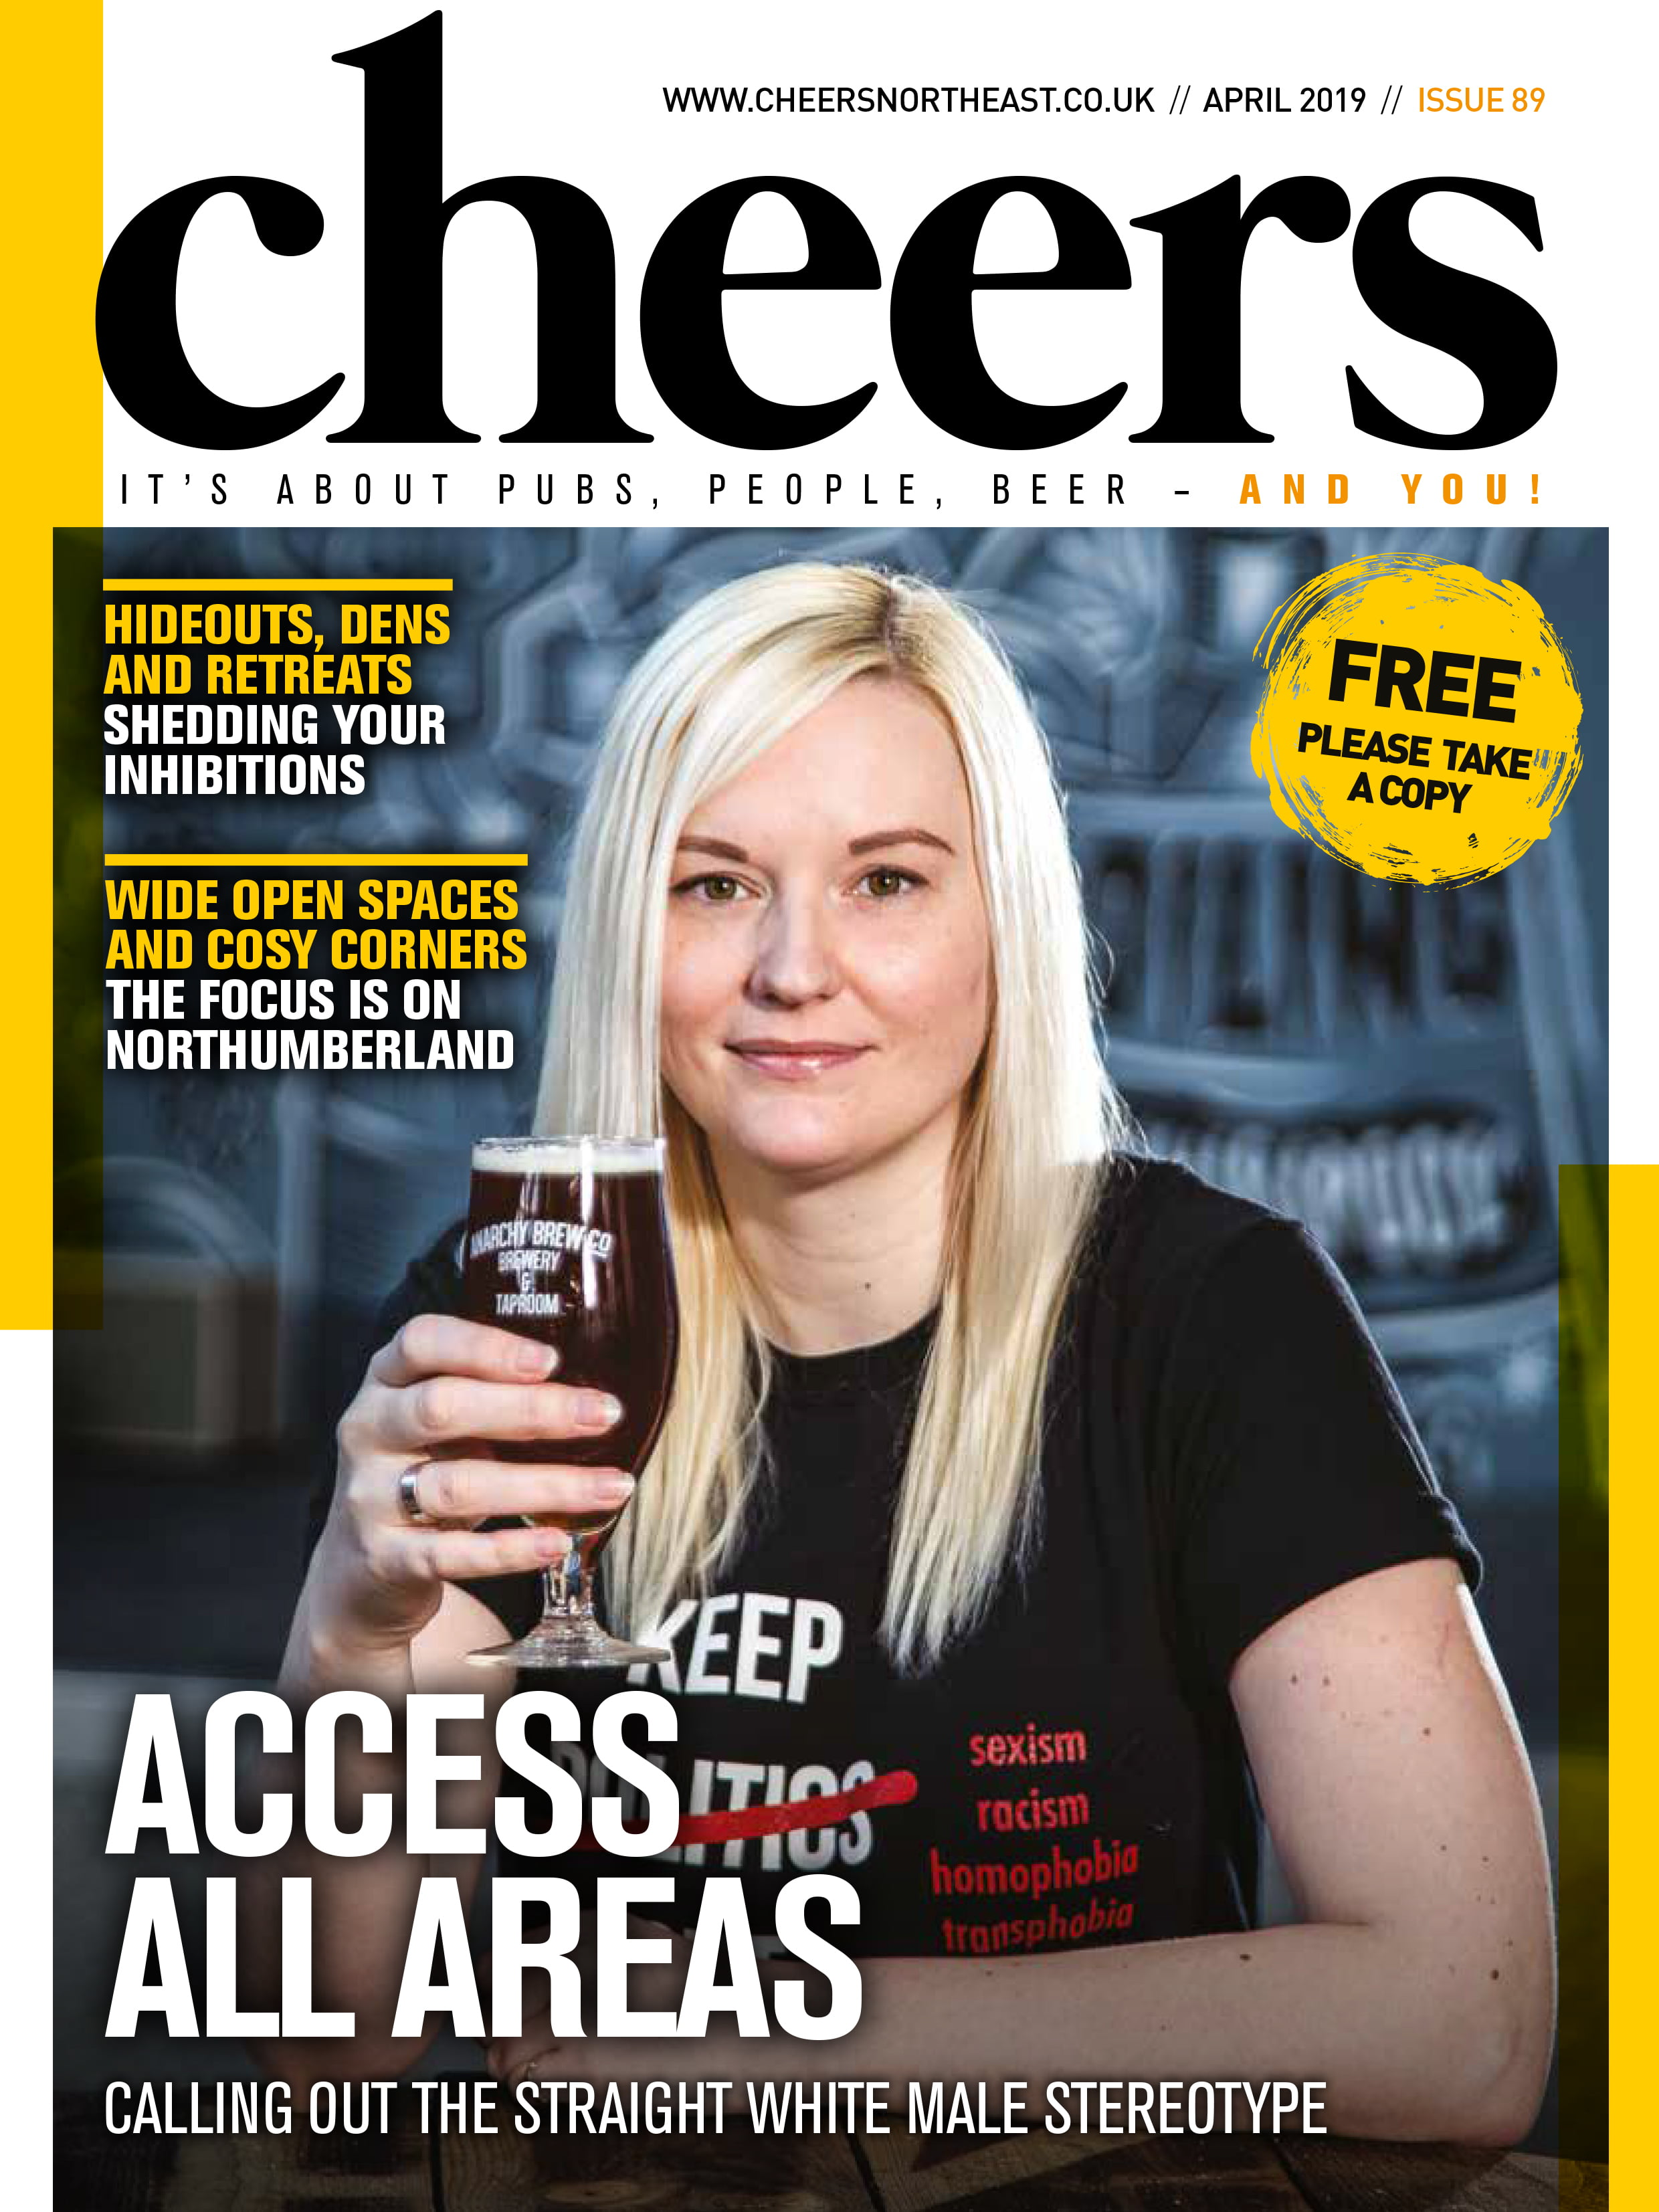 Cheers issue 89